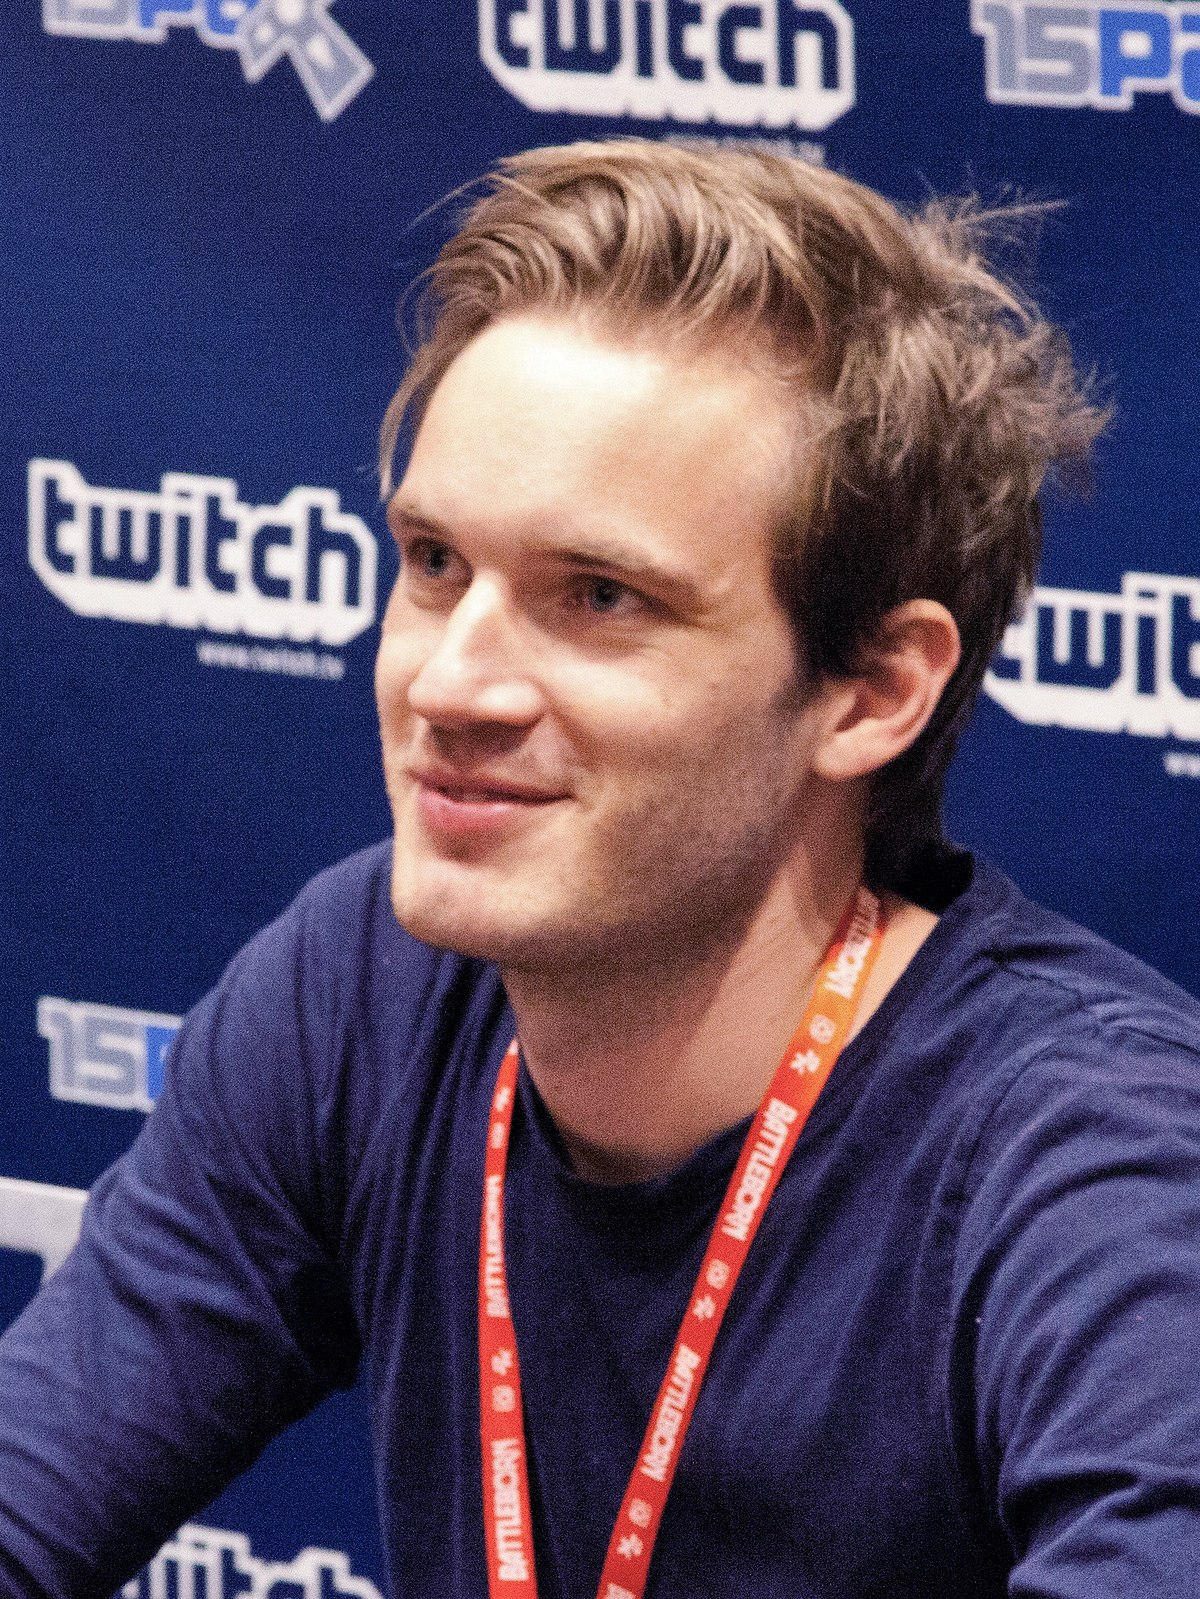 Pewdiepie wikipedia m4hsunfo Image collections